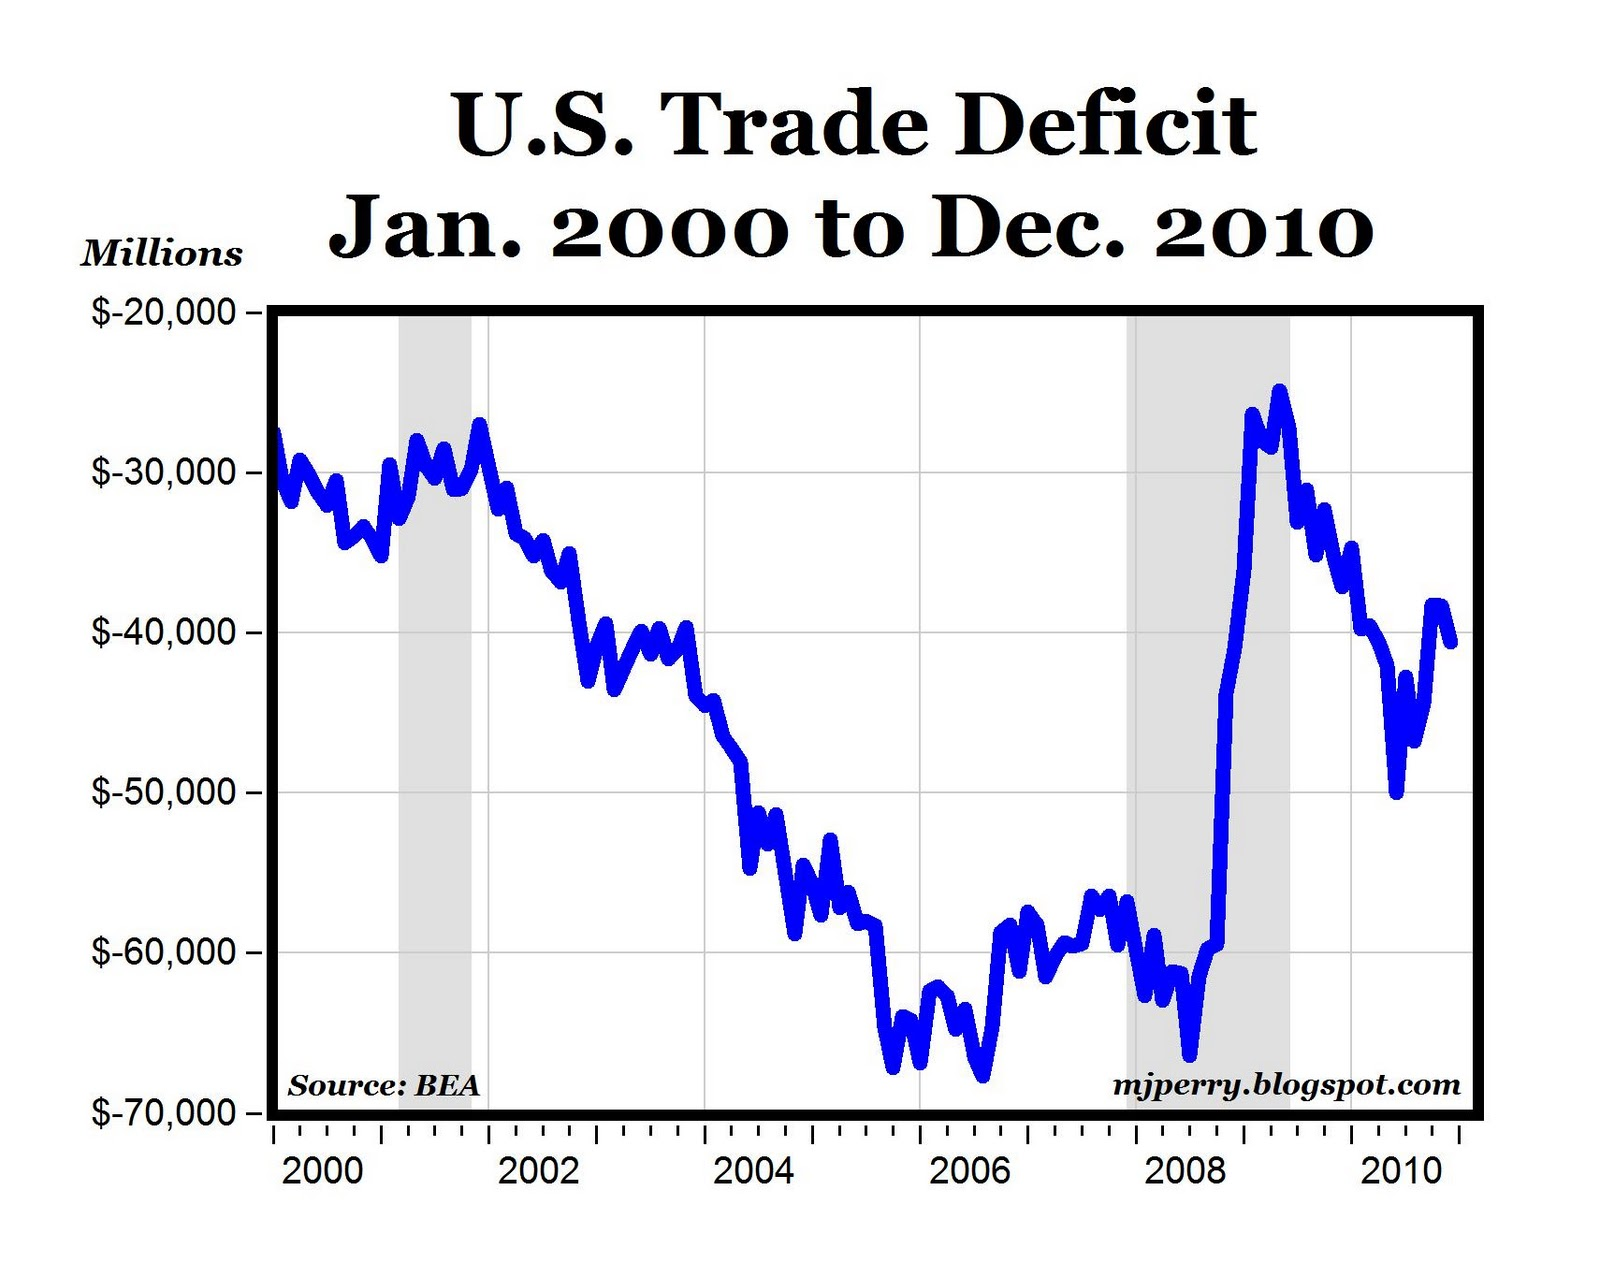 trade deficit of the us and The us trade deficit widened more than expected in december to its highest level since 2008, as robust domestic demand pushed imports to a record high, adding to the stiff headwinds faced by the trump administration's america first trade policies.